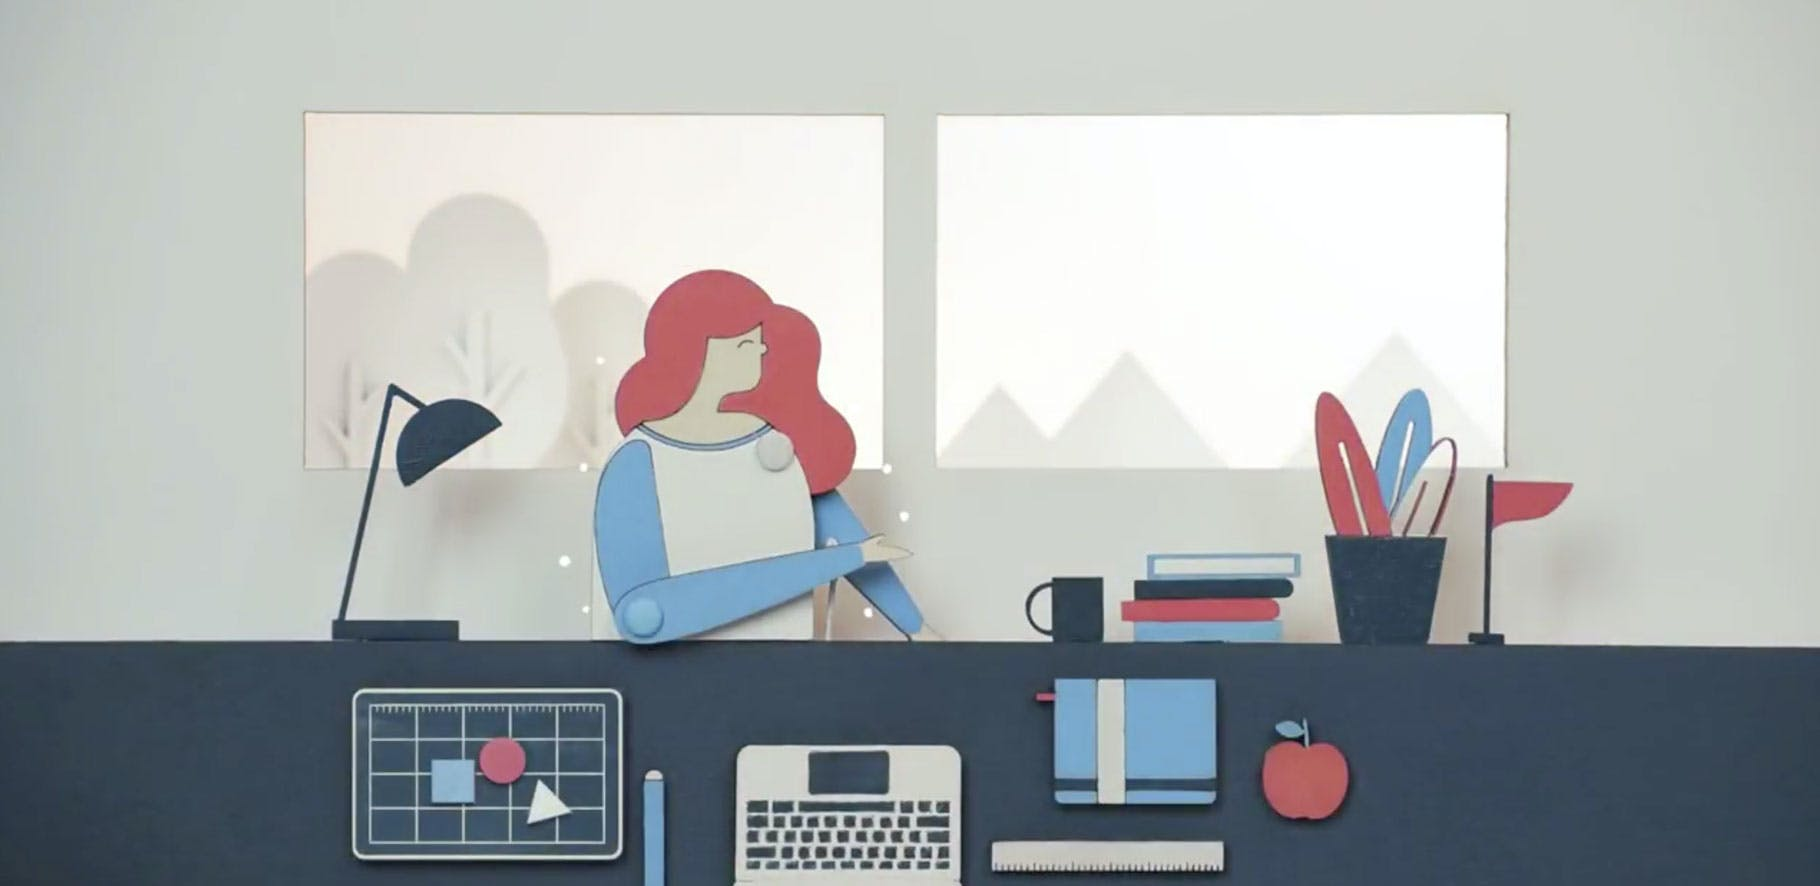 illustration of a women at her desk with laptop, files and office supplies